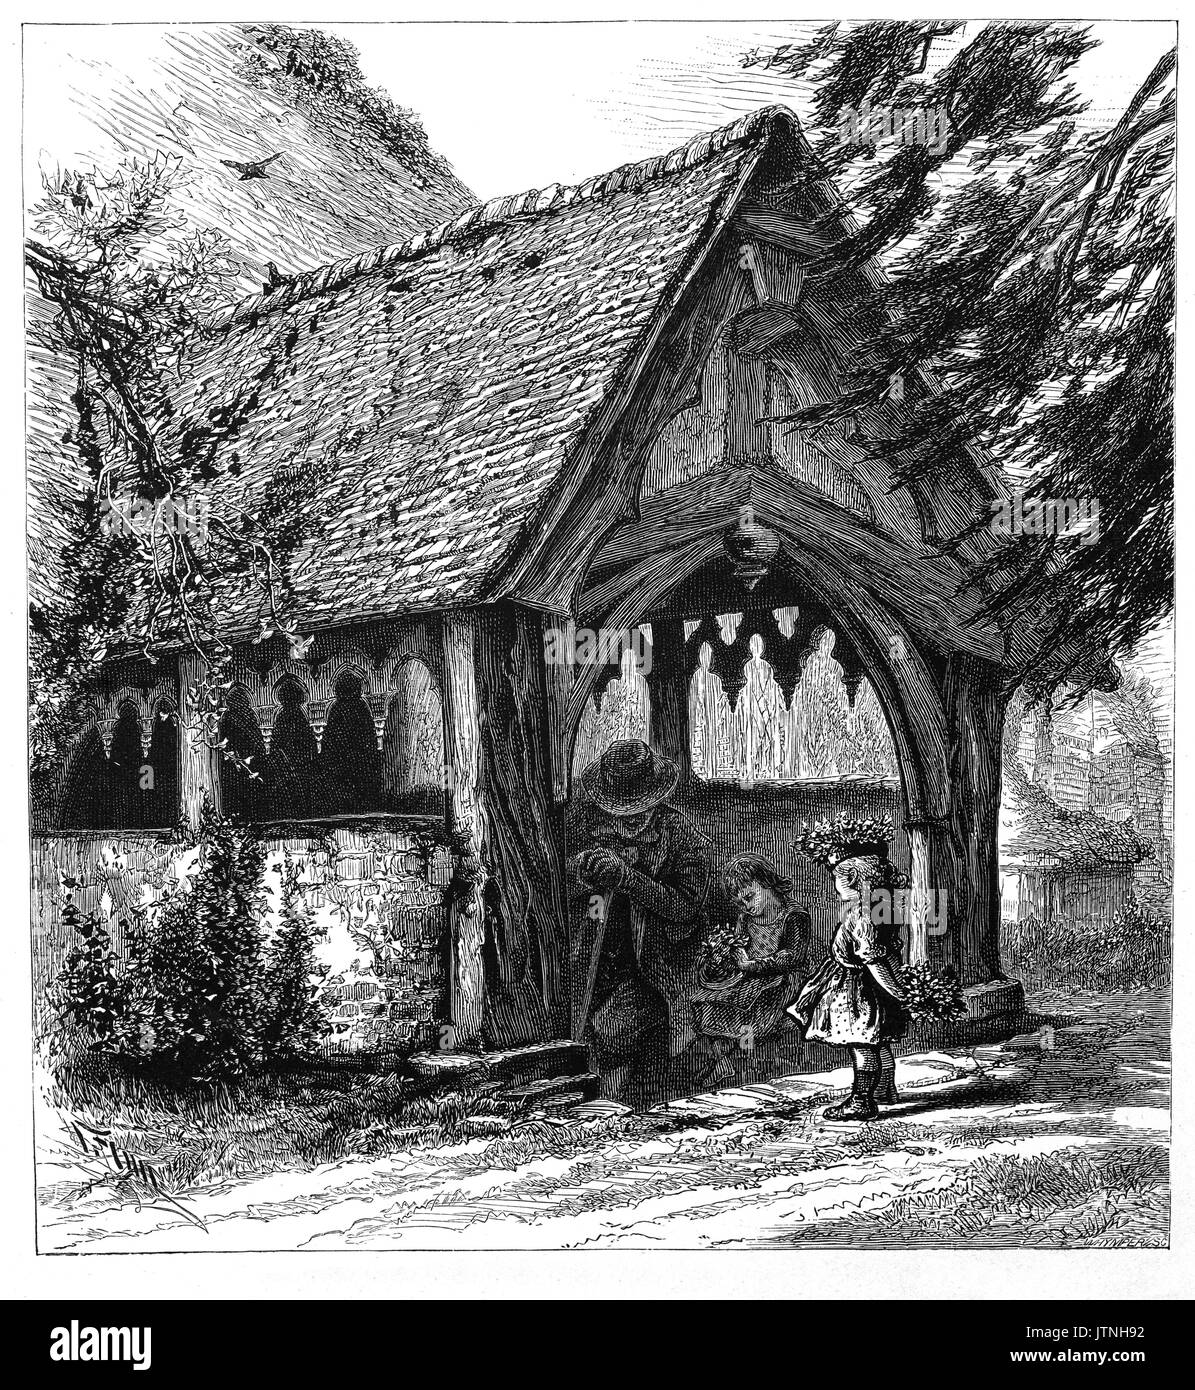 1870:  An old man and two young girls in the lovely old porch of the Norman Saint Giles church in Stoke Poges, a village in the South Bucks district of Buckinghamshire, England. Thomas Gray's  'Elegy Written in a Country Churchyard' is believed to have been written in the churchyard. - Stock Image